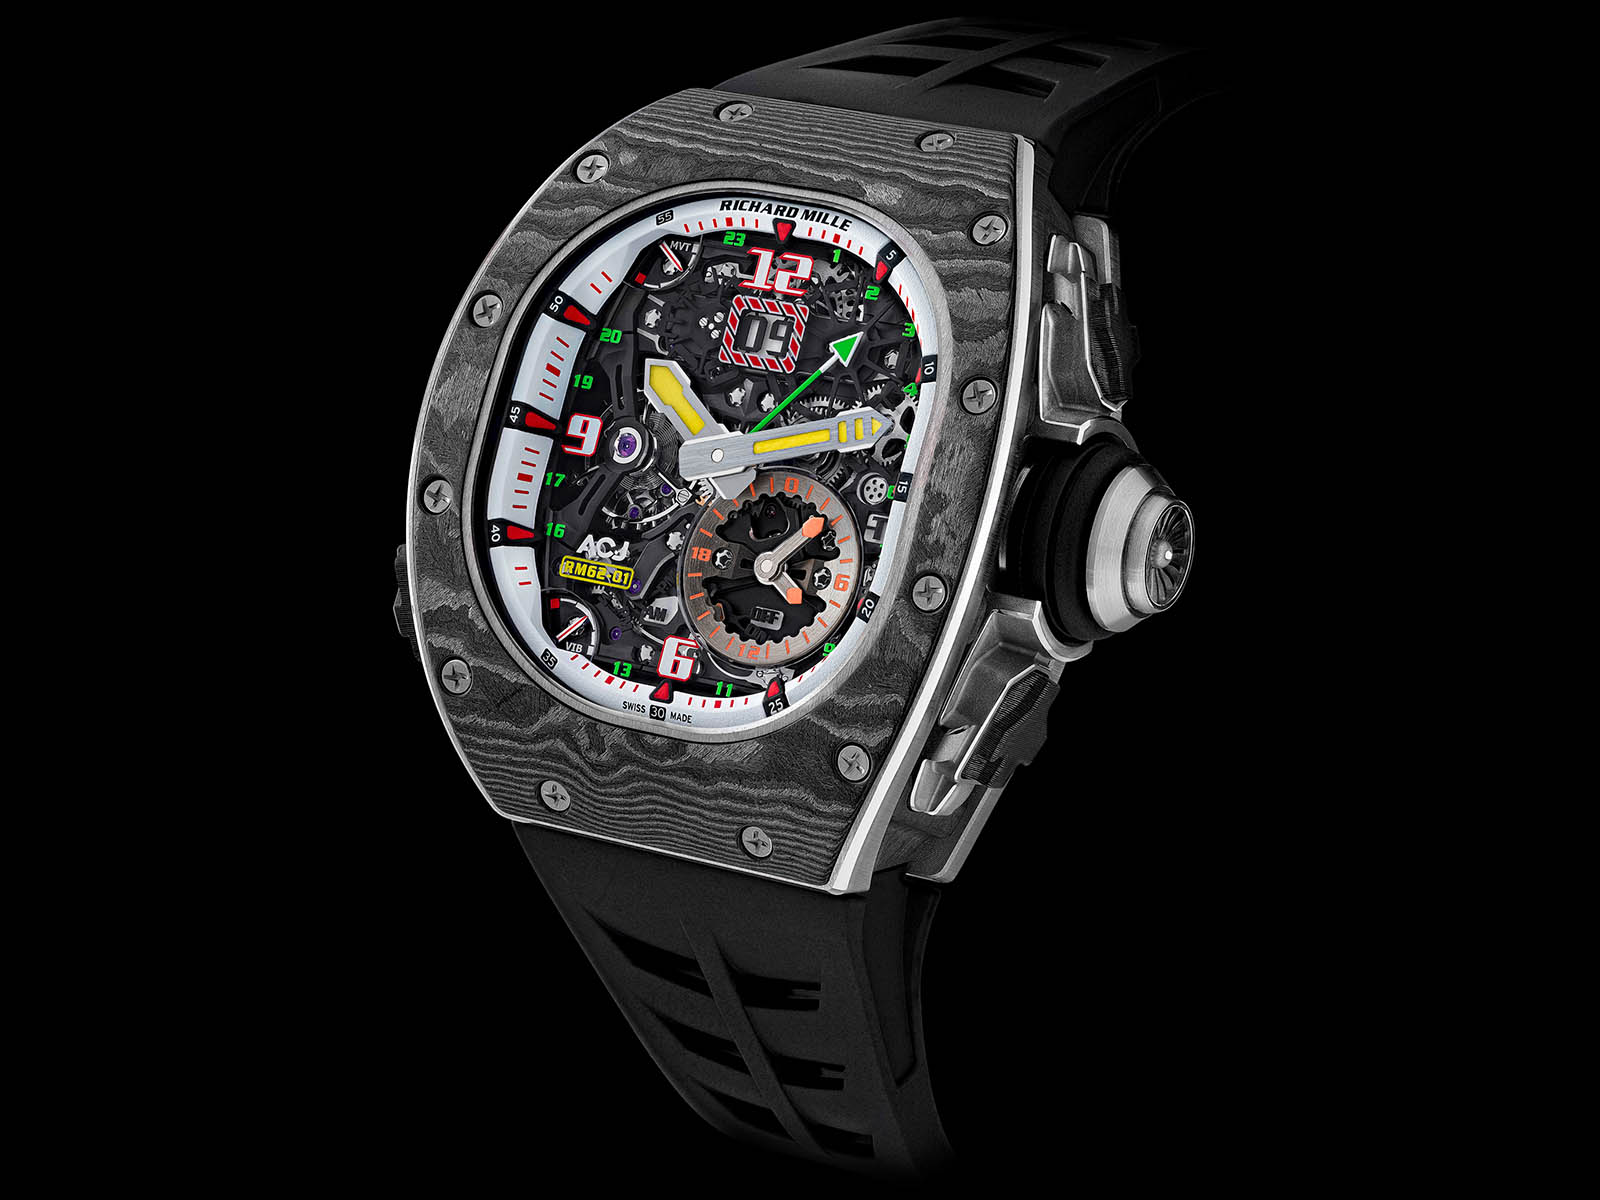 richard-mille-rm-62-01-tourbillon-vibrating-alarm-airbus-corporate-jets-1.jpg